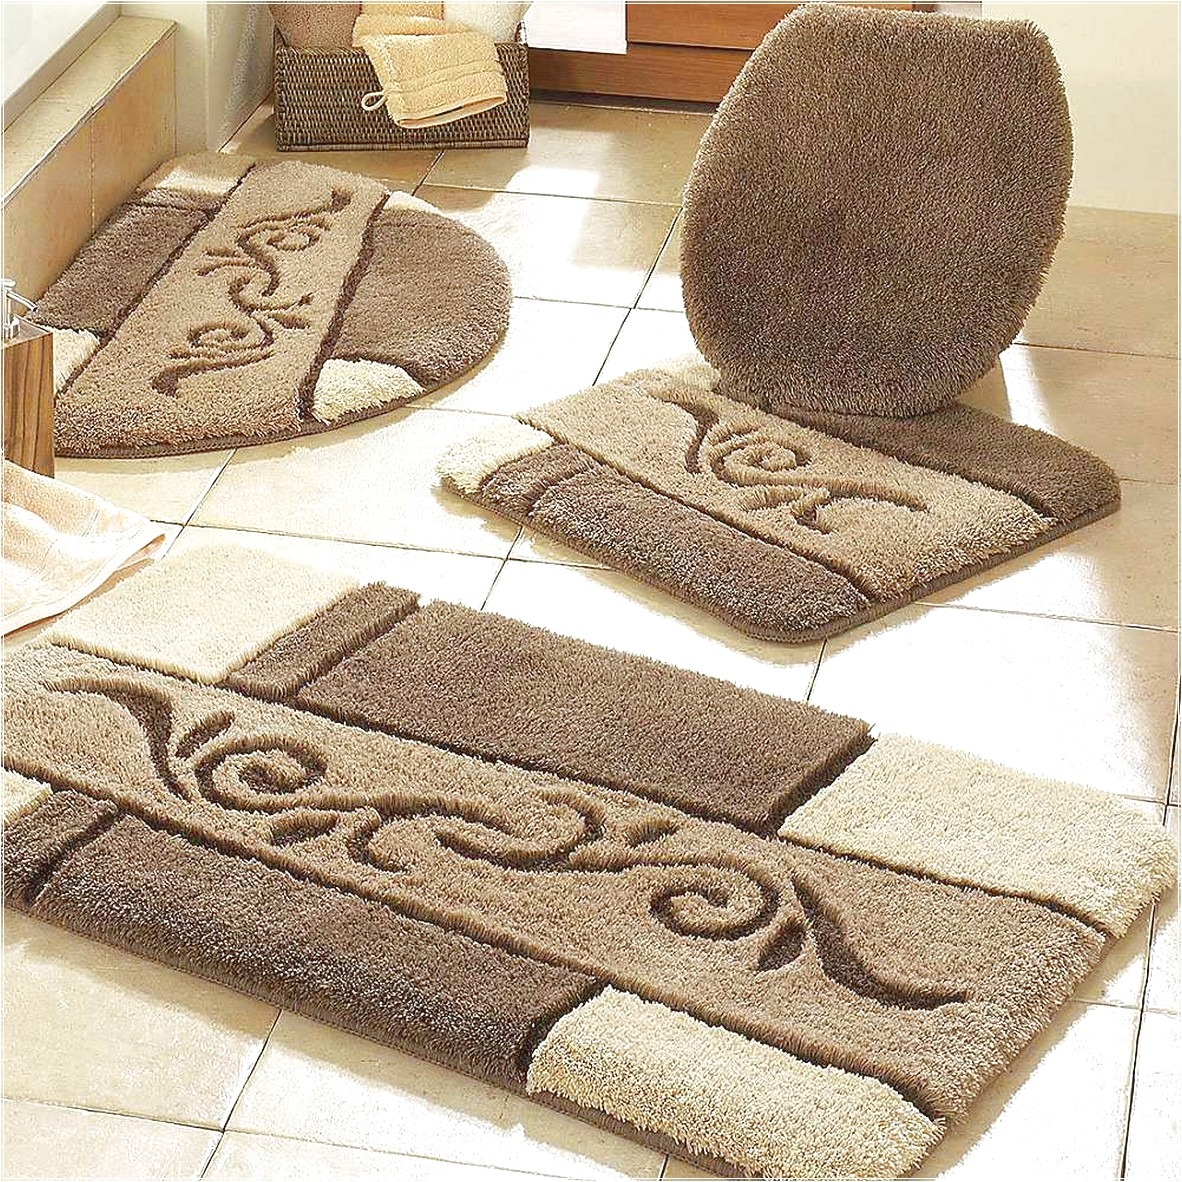 Bathroom Mats And Rugs Sets